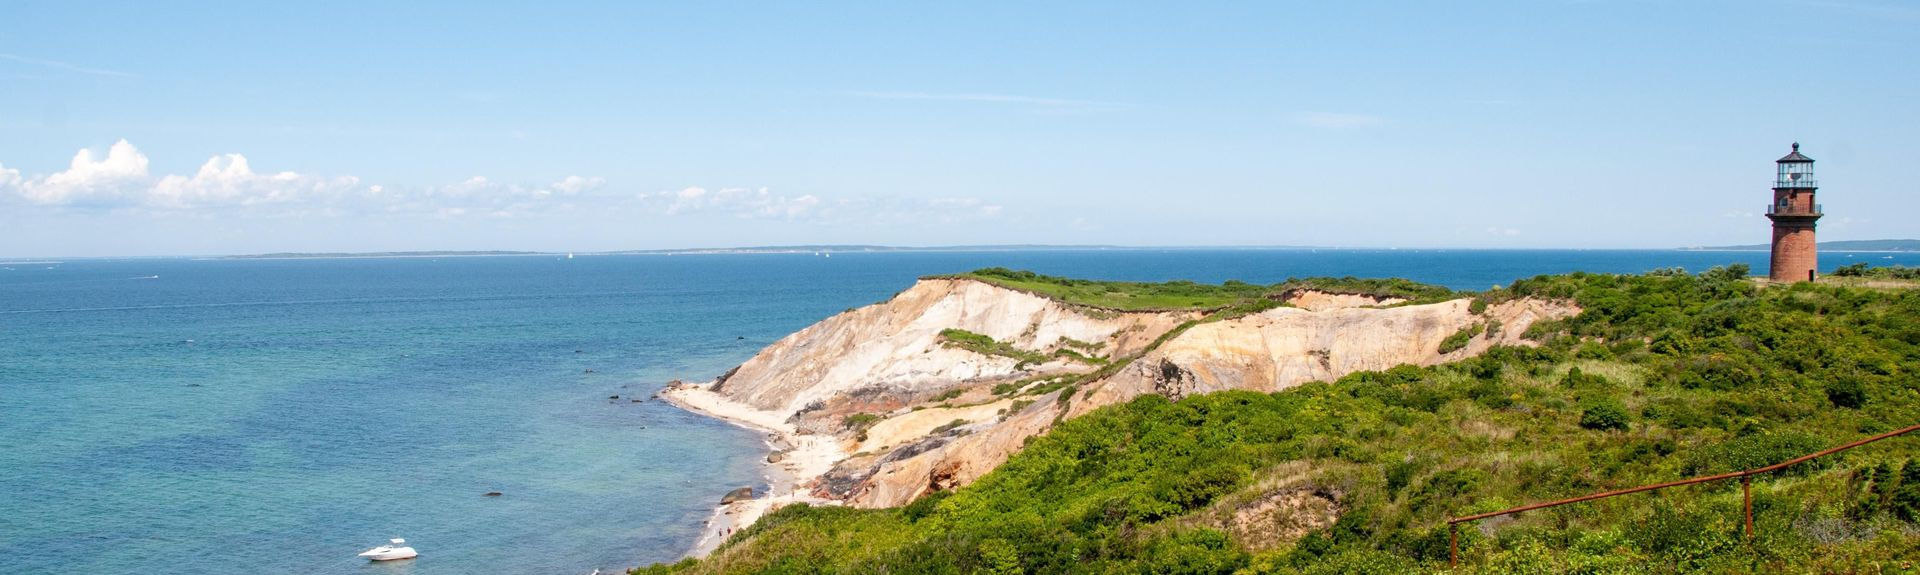 Chilmark, Massachusetts, Yhdysvallat